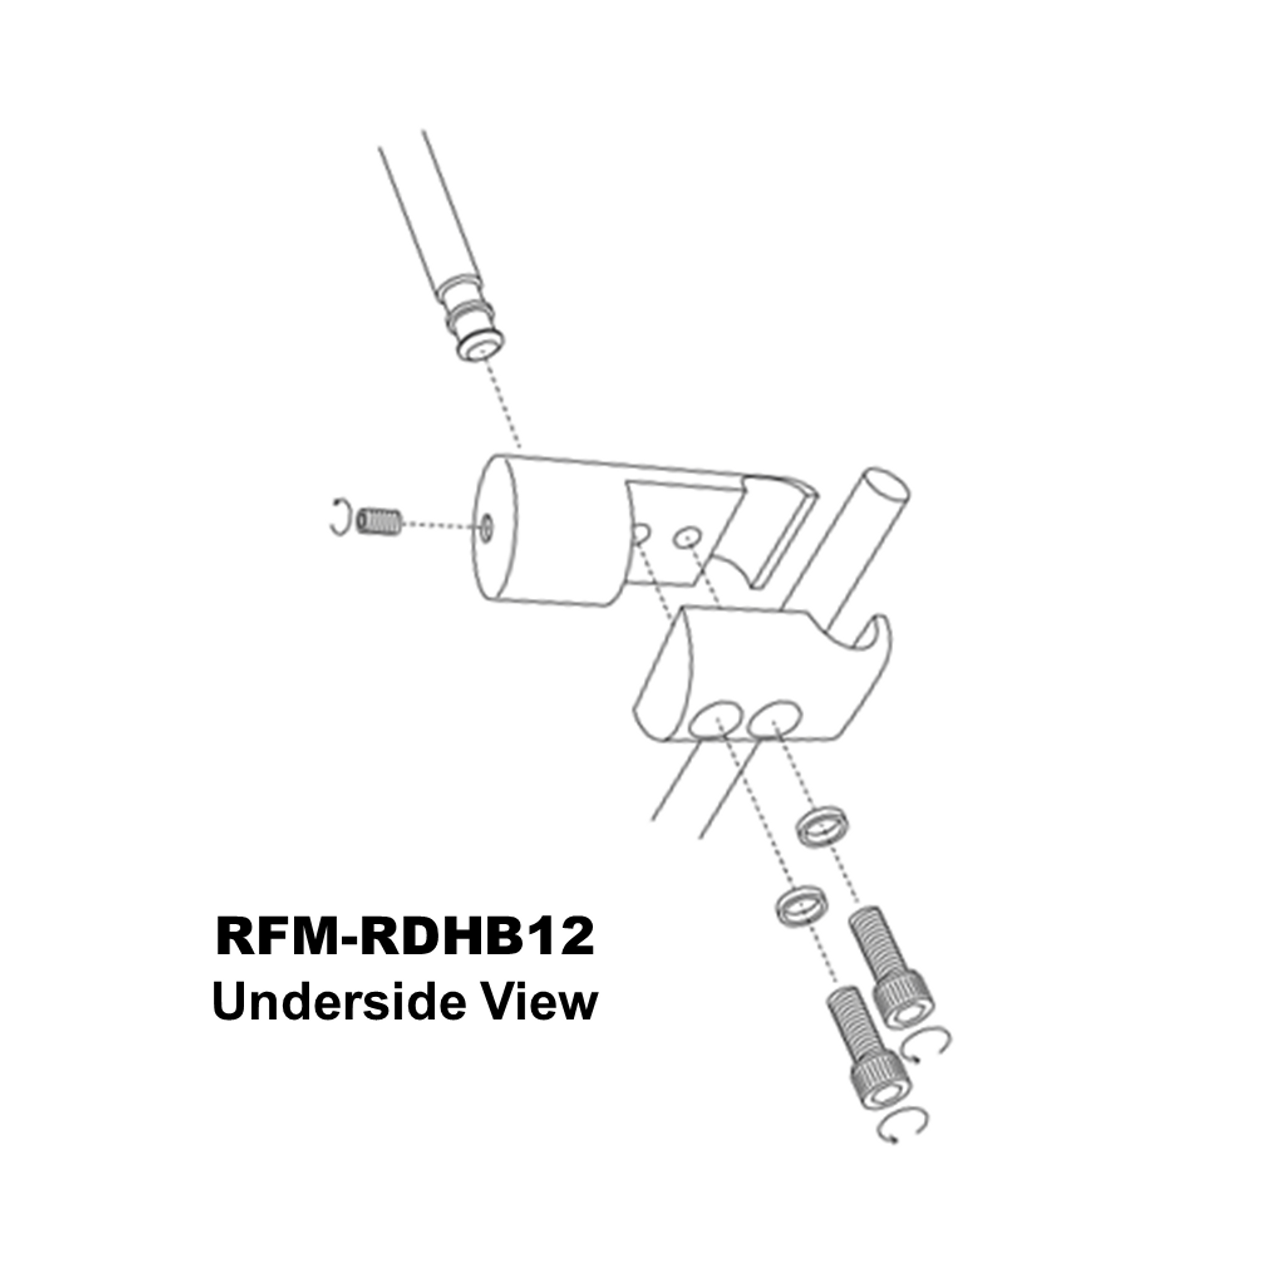 RFM-RDHB12 exploded view (from underside)